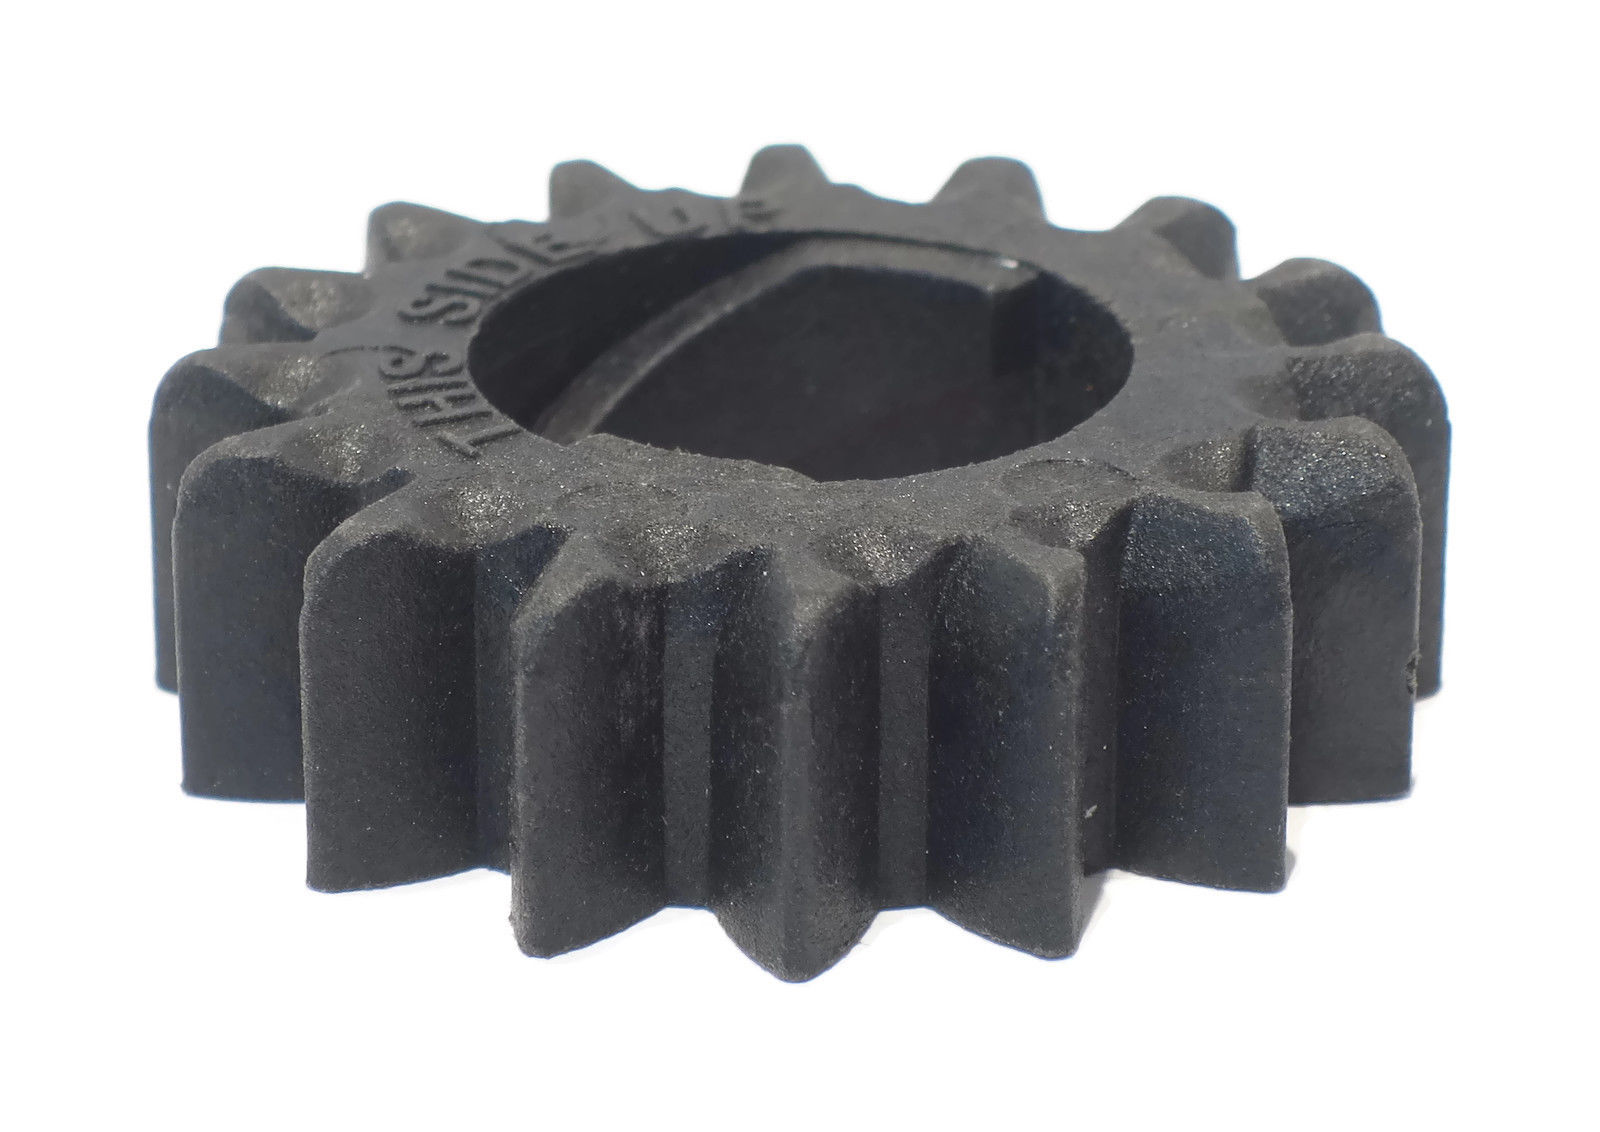 STARTER DRIVE GEAR fits John Deere Scotts L2048 L2548 S2046 S2546 Lawn Tractors by The ROP Shop by The ROP Shop